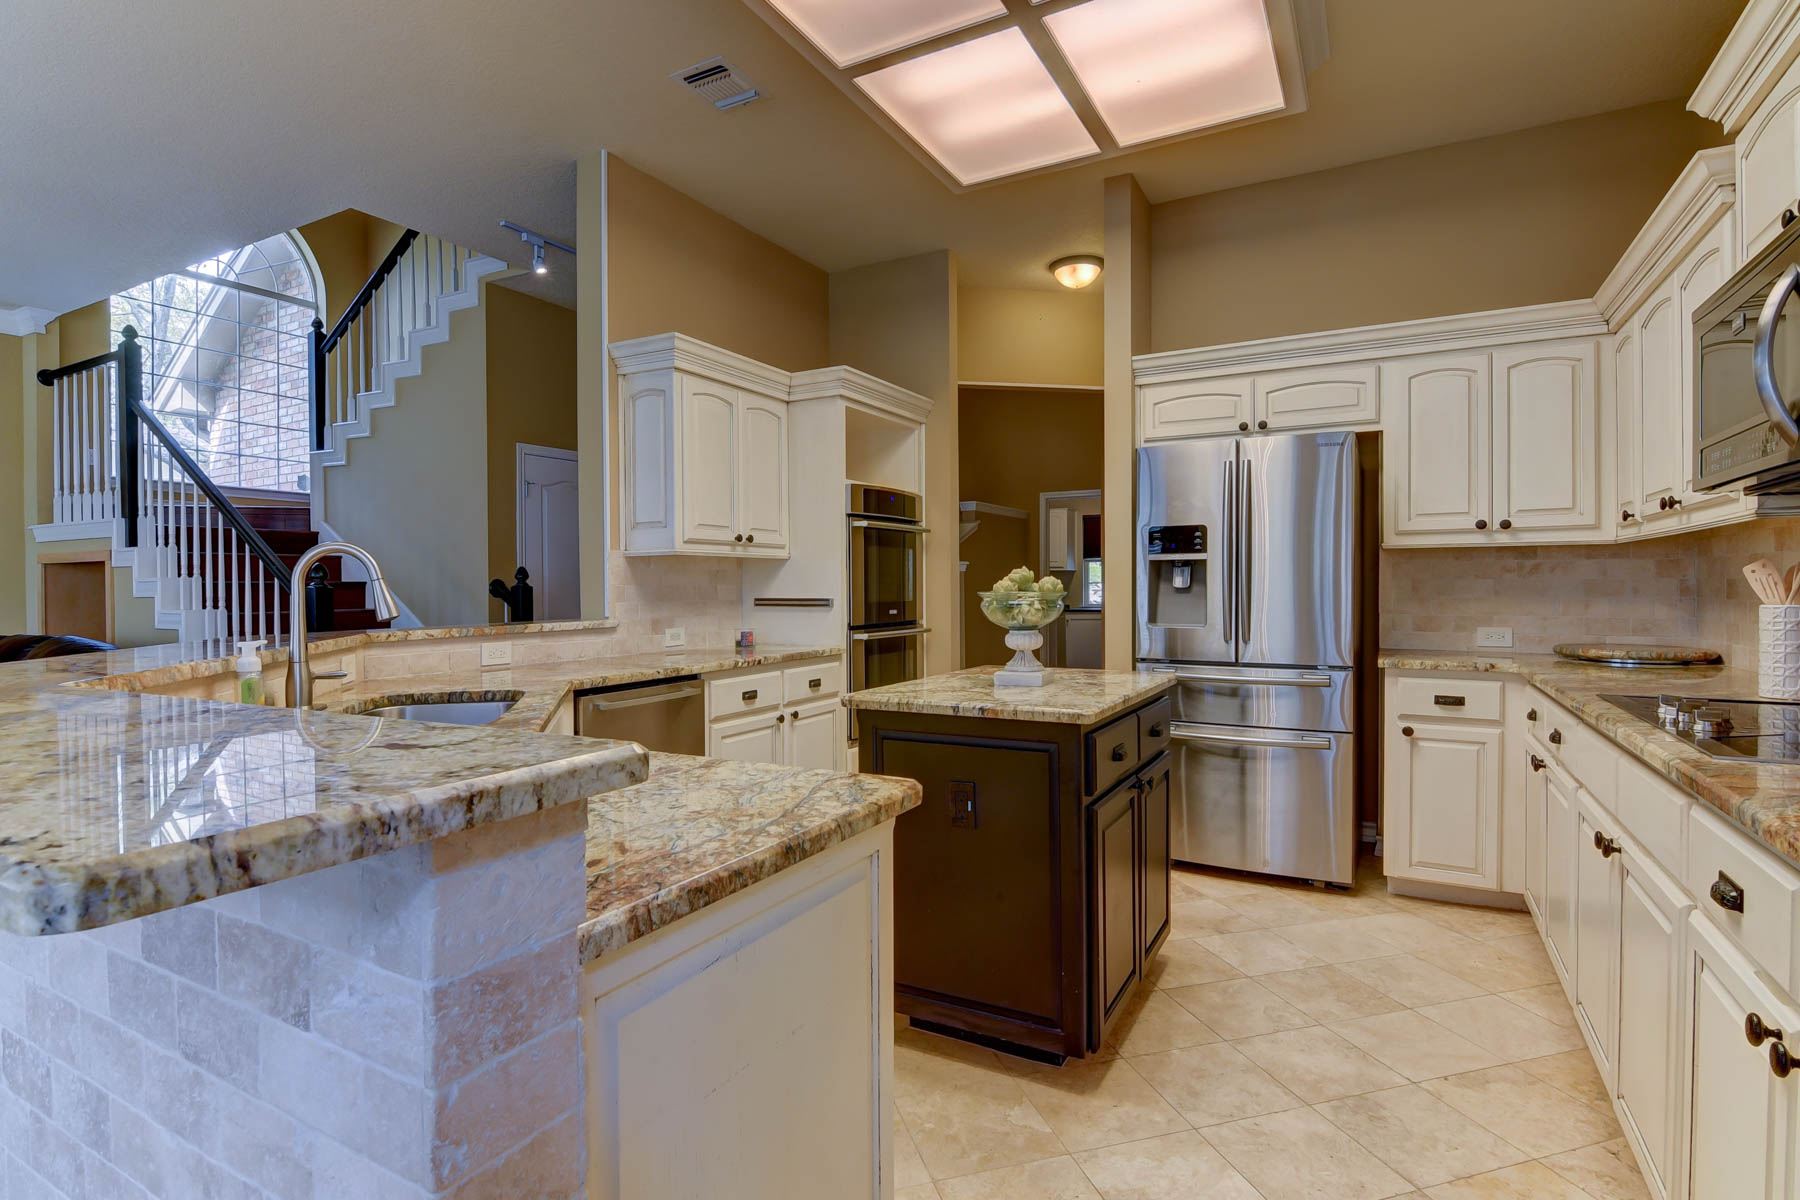 Single Family Home for Sale at Beautiful Custom Built Sitterle Home 18323 Apache Springs Dr San Antonio, Texas 78259 United States